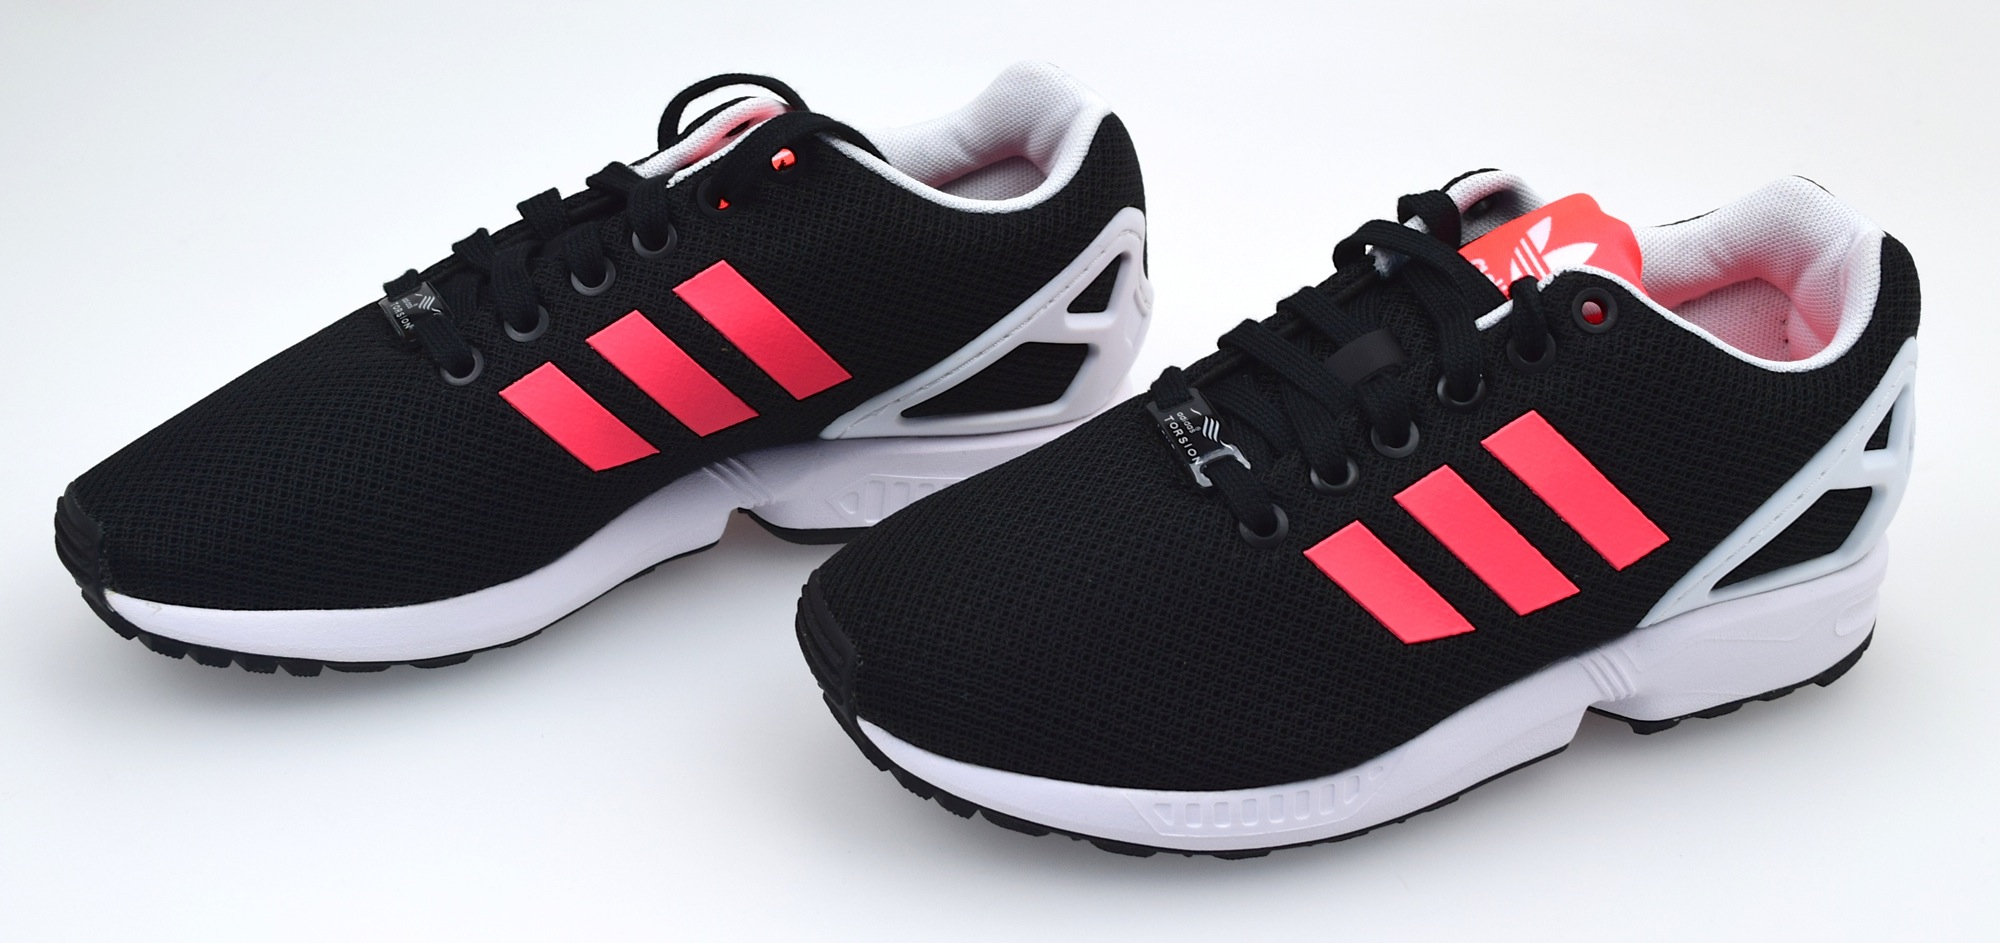 reputable site f1394 bda98 Image is loading Adidas-Shoe-Sneaker-Women-Nylon-Black-Fuchsia-and-